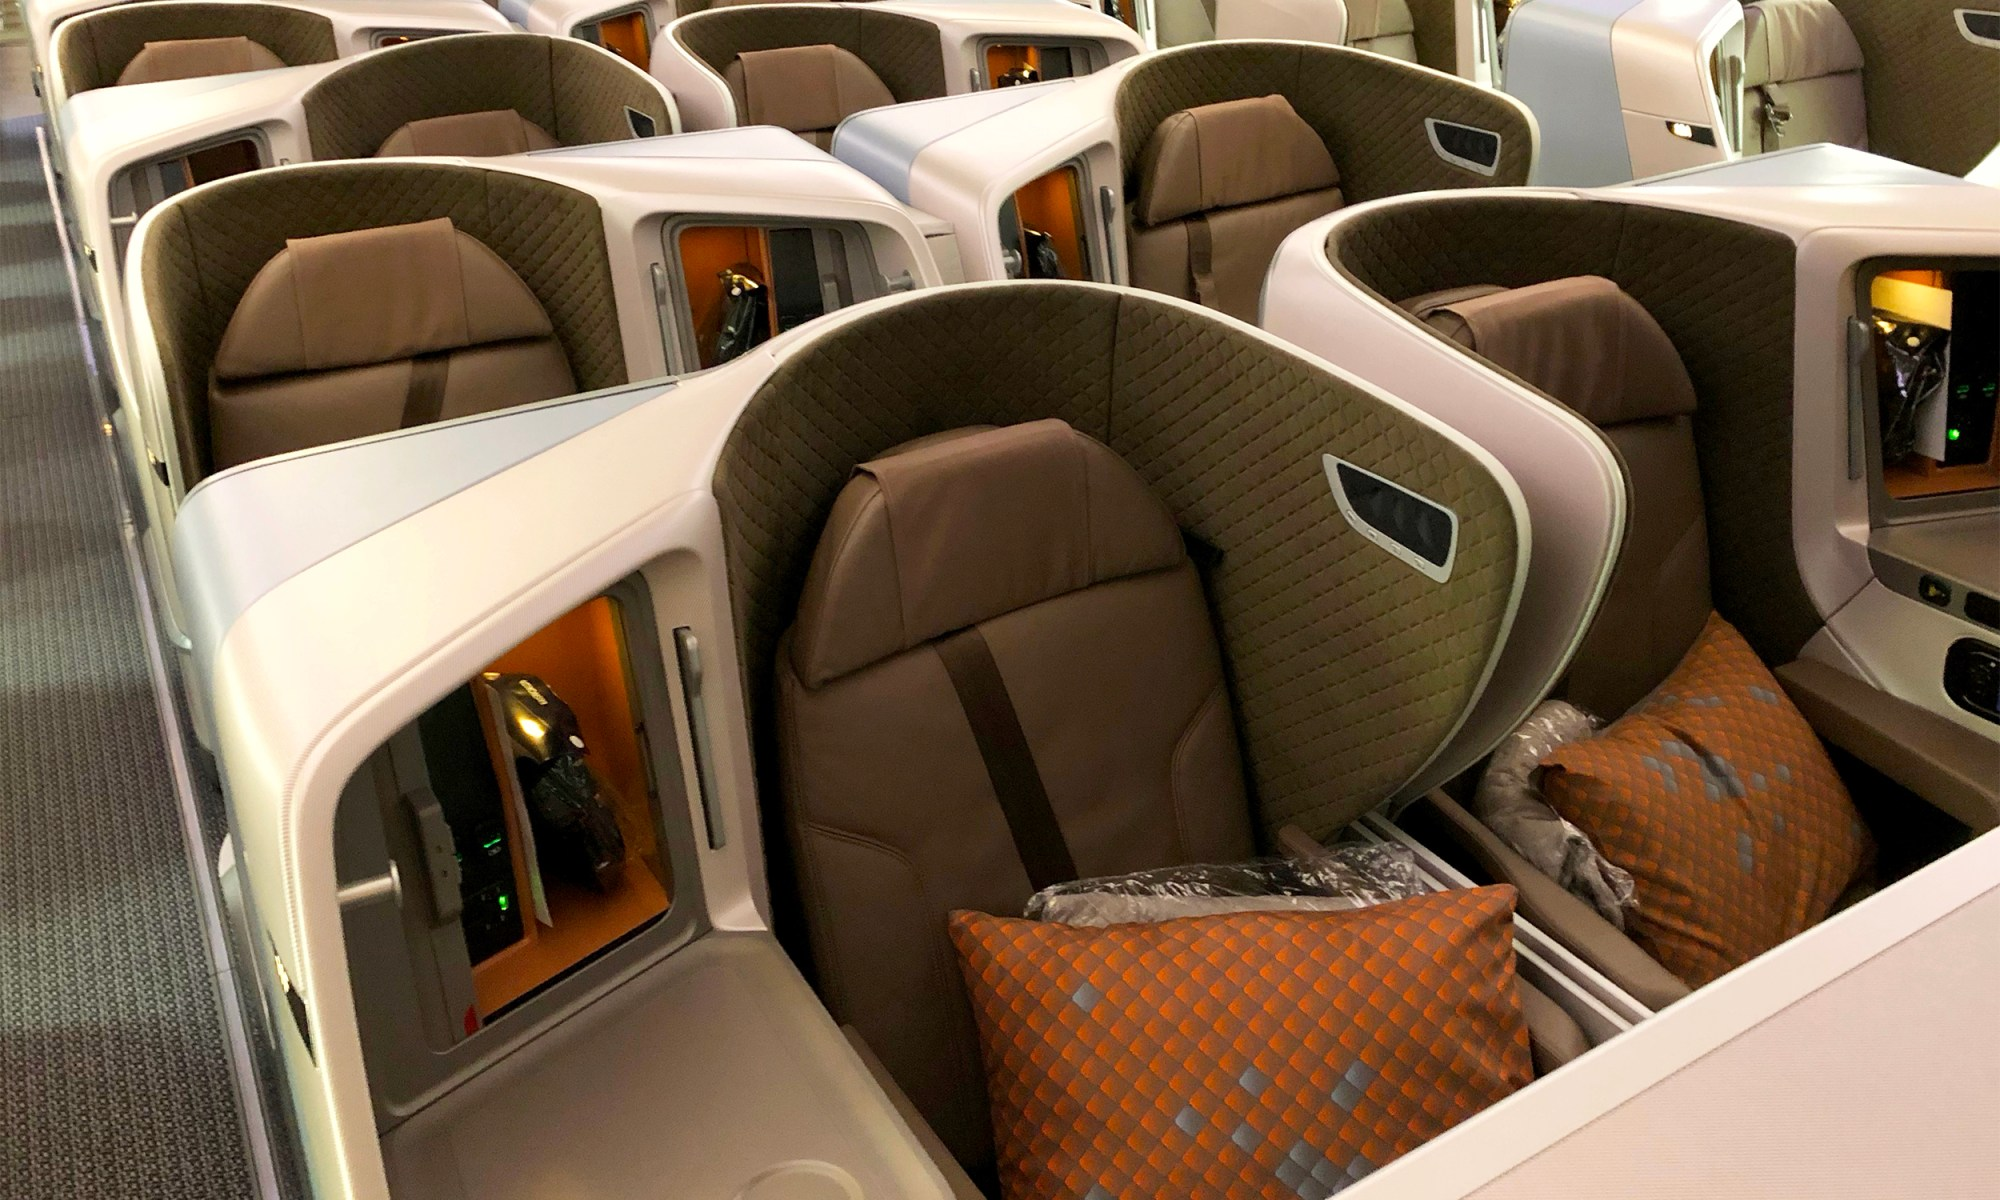 Brisbane and KL get the Singapore Airlines A350 Regional ...